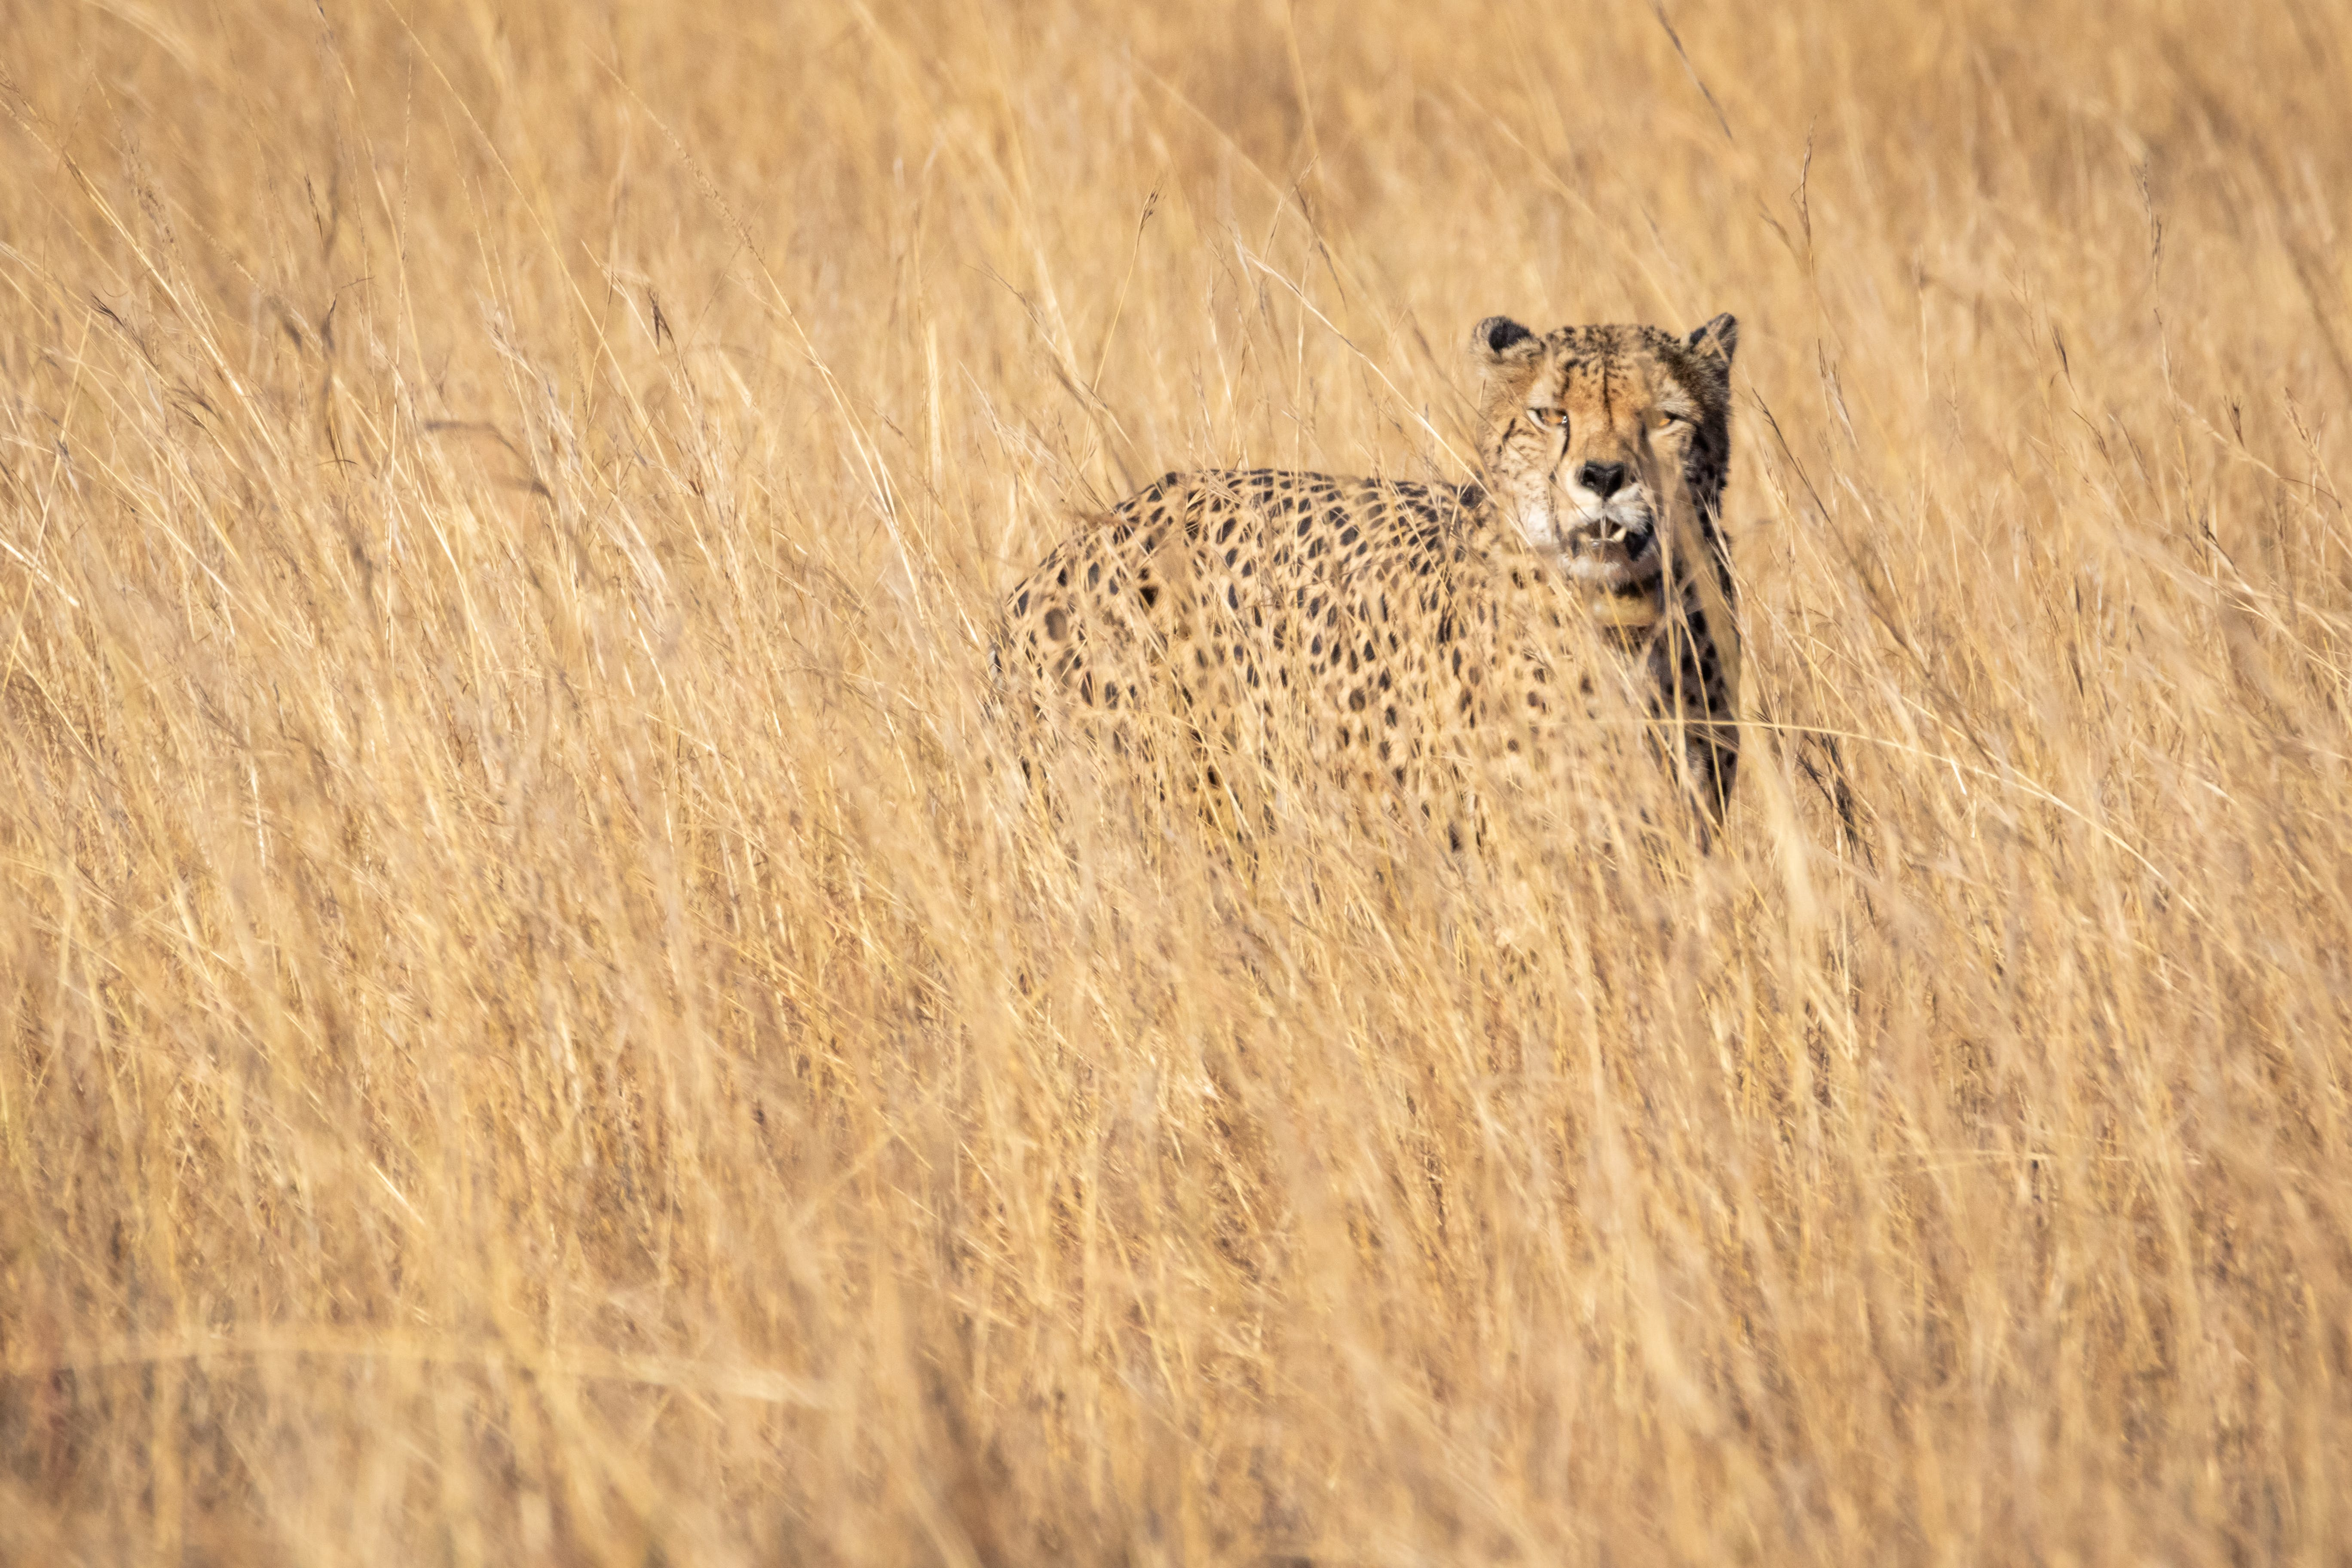 Cheetah On Grass Field